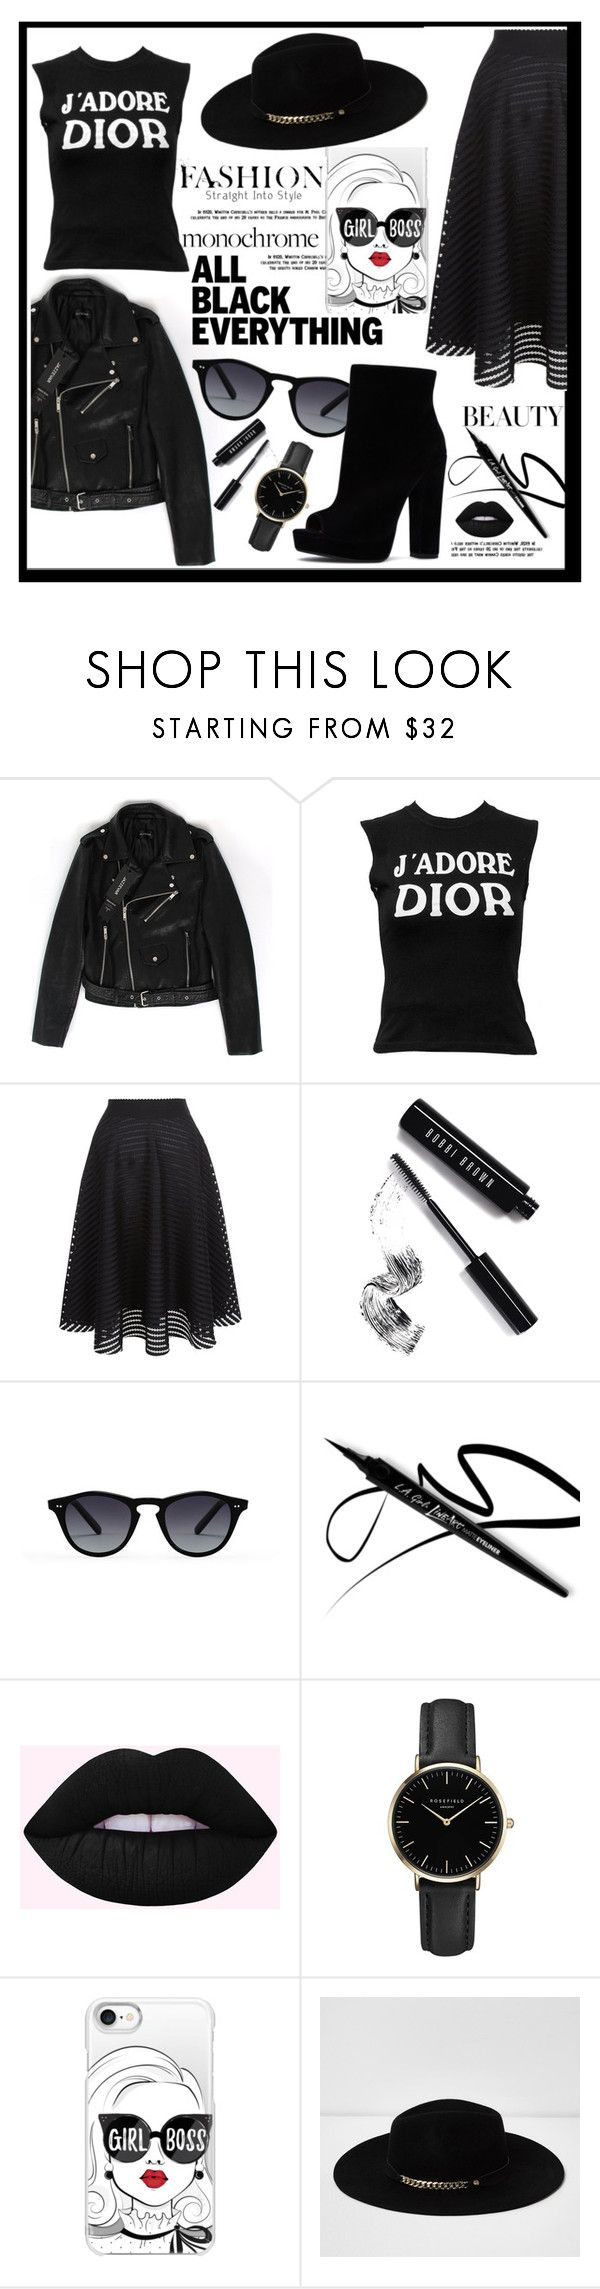 """""""Monochrome: All Black Everything"""" by liviagb ❤ liked on Polyvore featuring Christian Dior, New Look, Bobbi Brown Cosmetics, ROSEFIELD, Casetify, River Island, monochrome and allblack"""